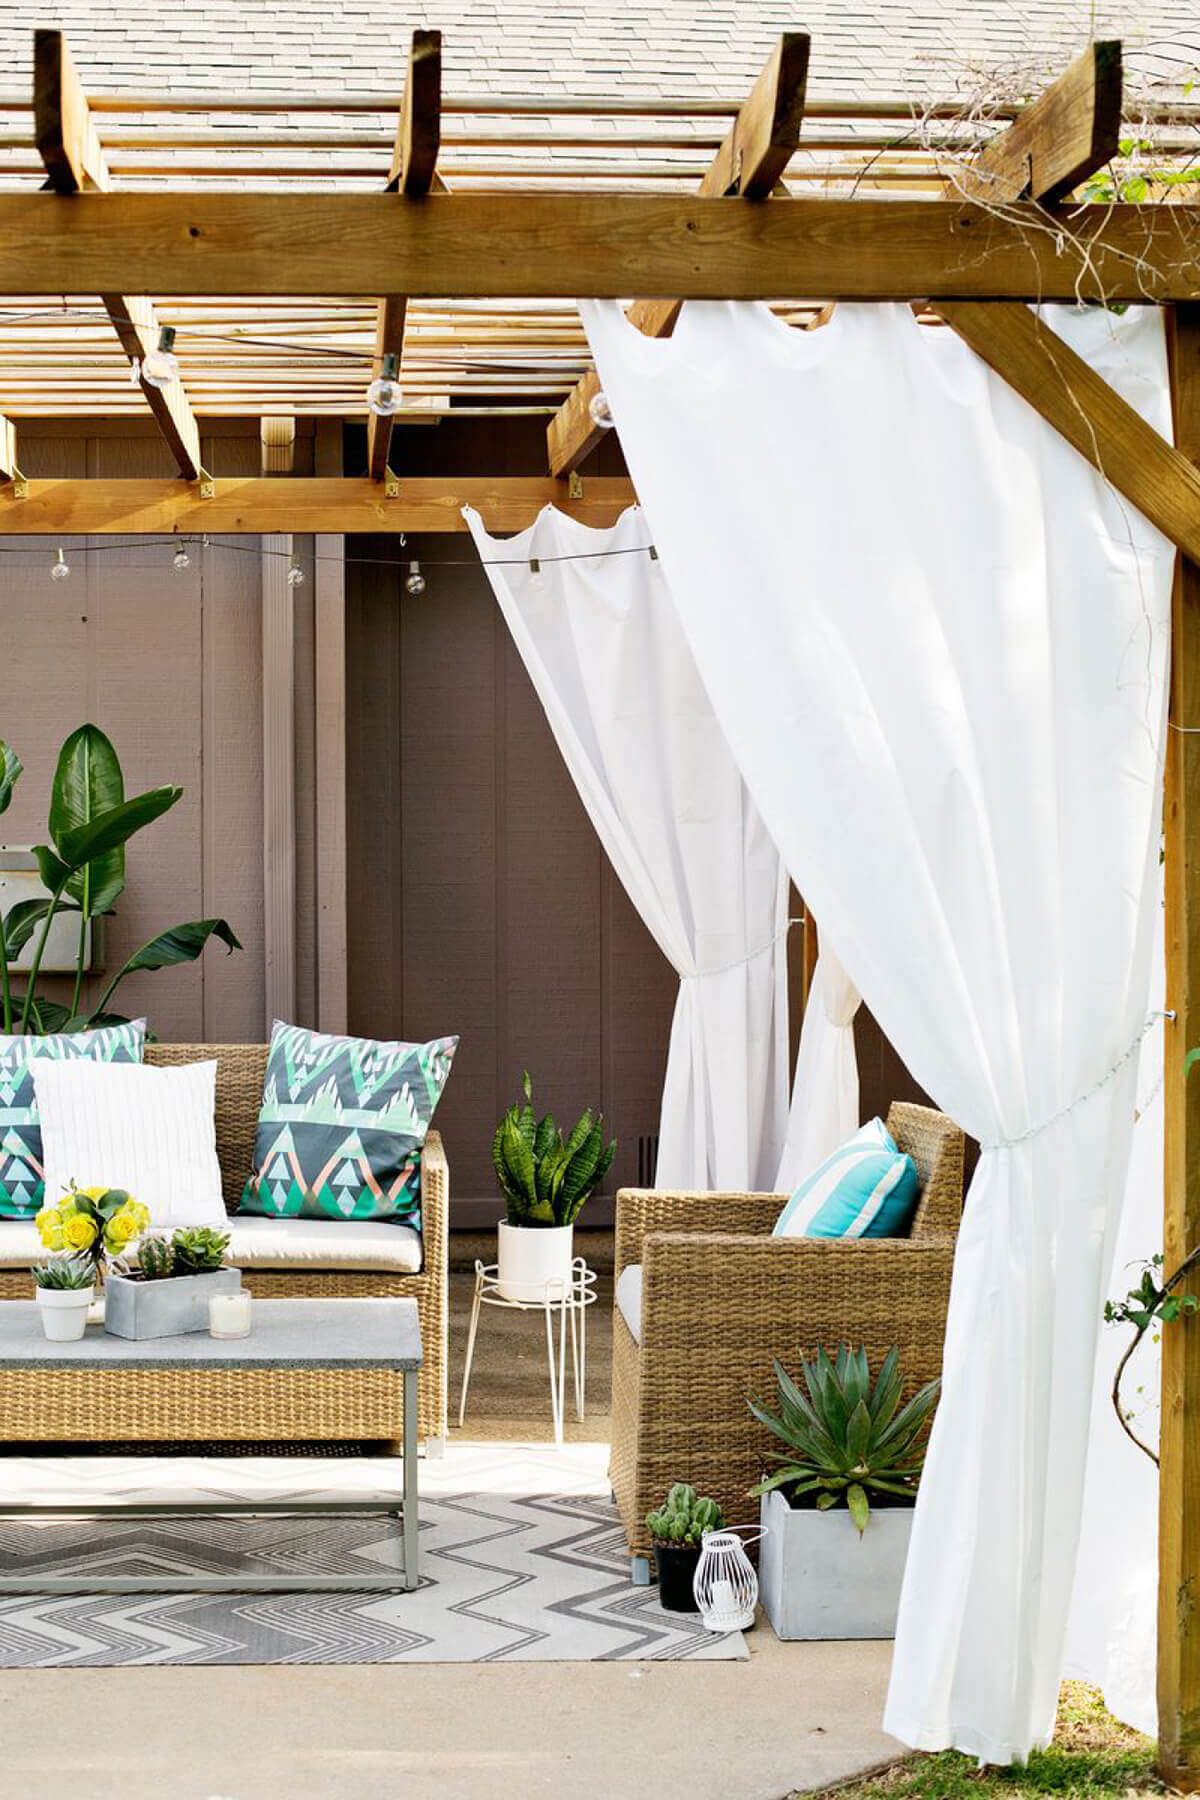 Relaxing Pergola Sitting Space with Shade Curtains